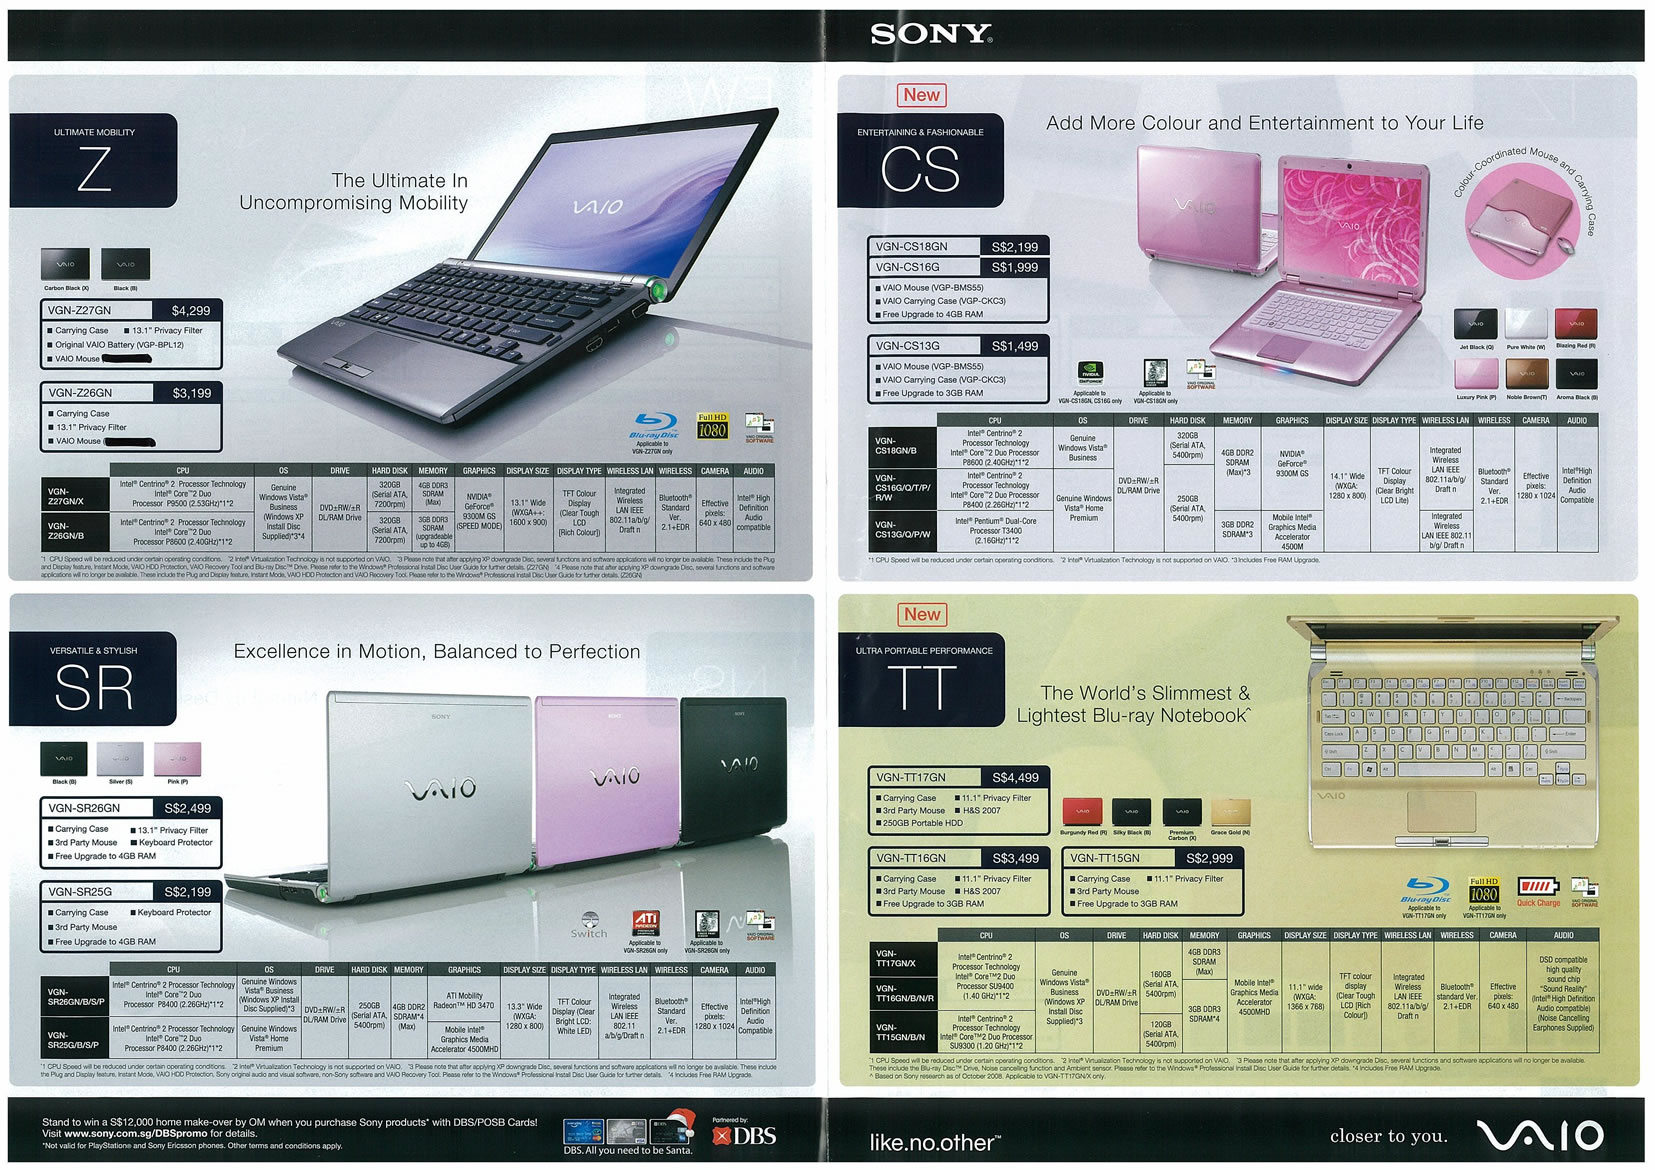 Sitex 2008 price list image brochure of Sony Notebooks Page 1 - Vr-zone Tclong